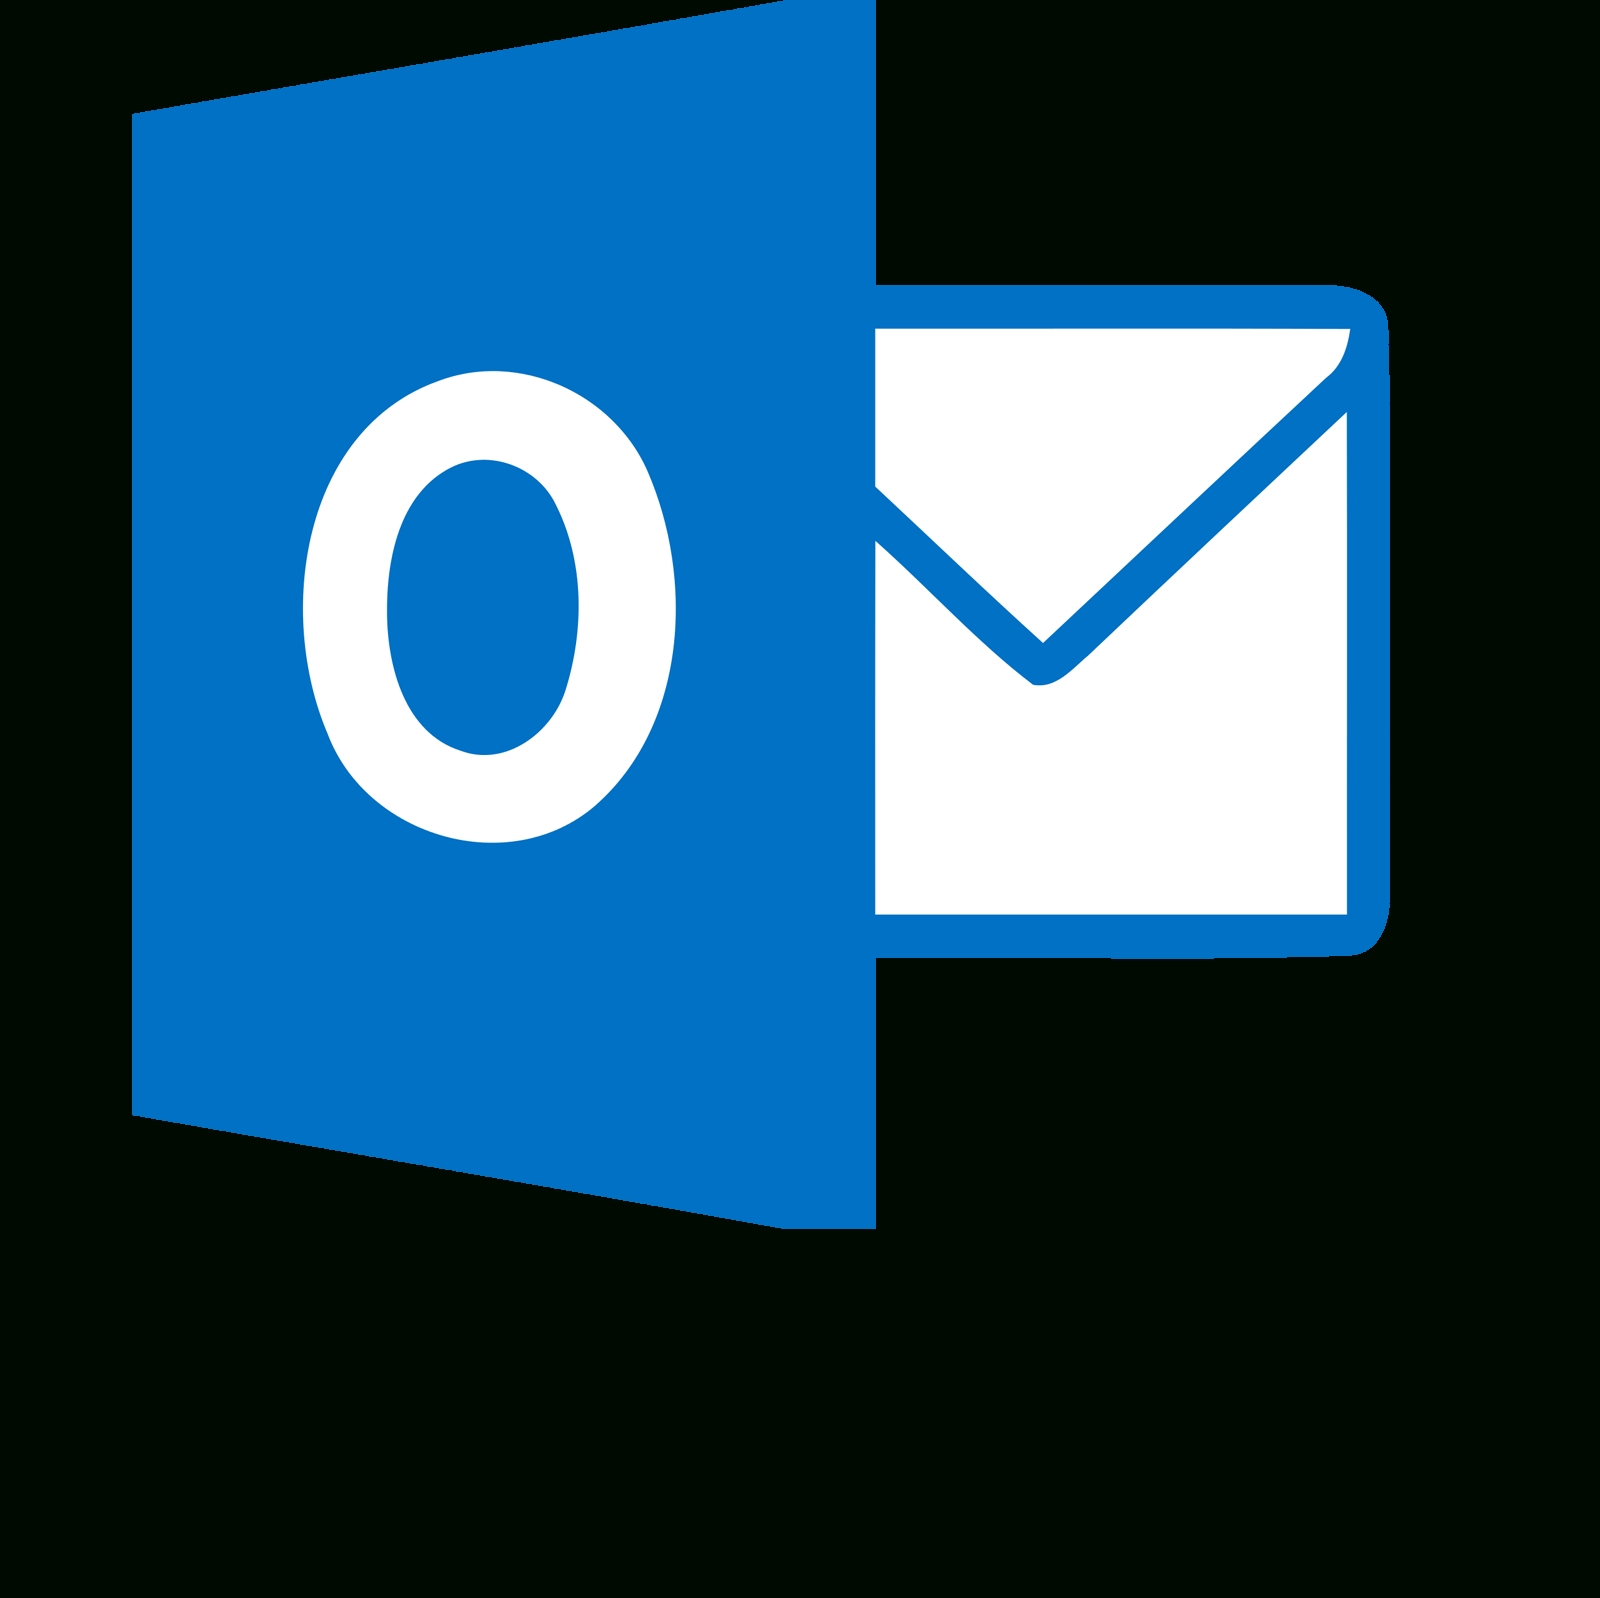 outlook transparent logo logodix